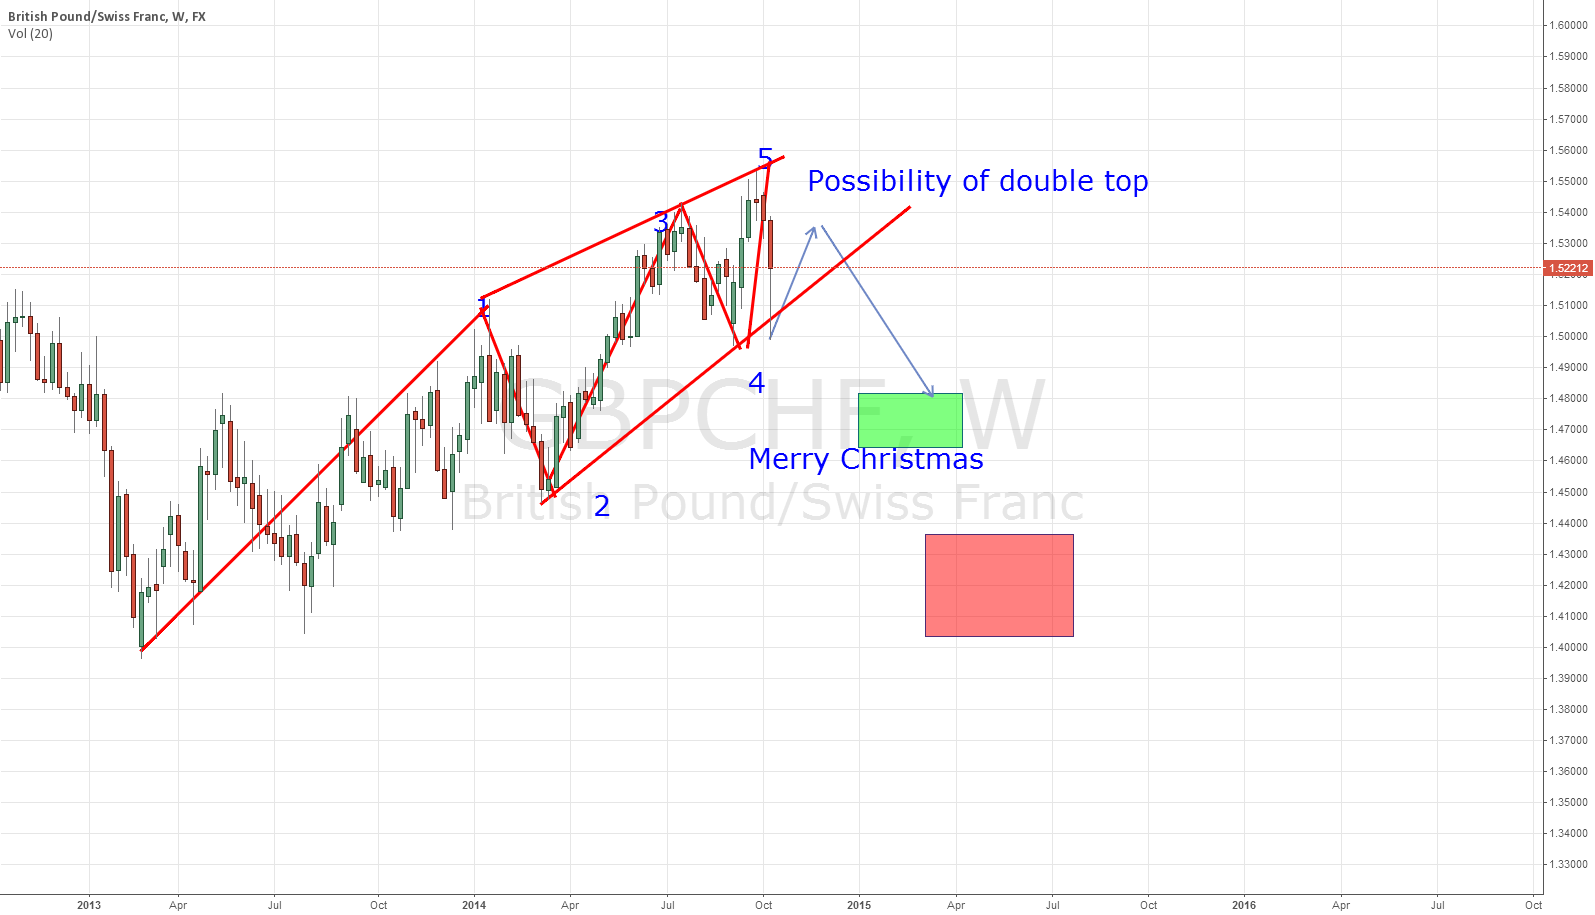 Possiblity till Christmas - Bearish